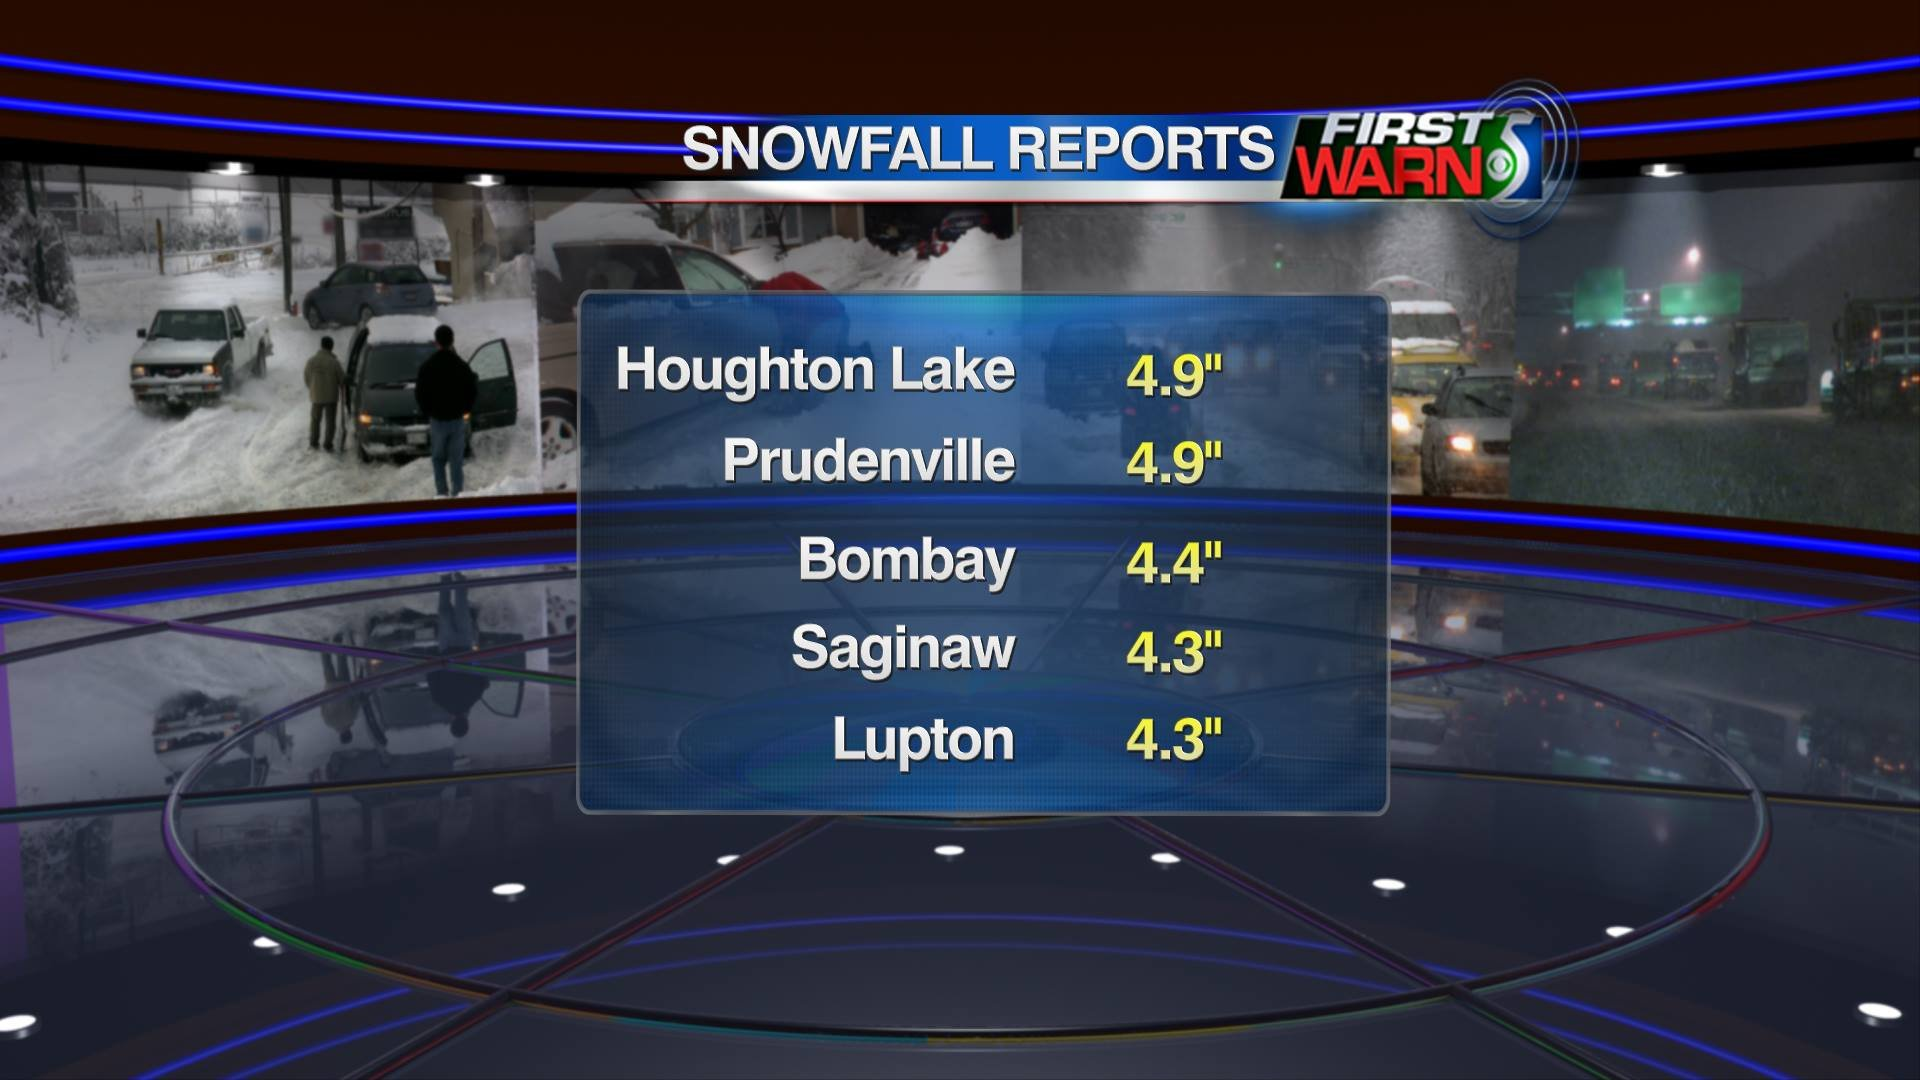 Reported Snowfall Totals, March 23-24